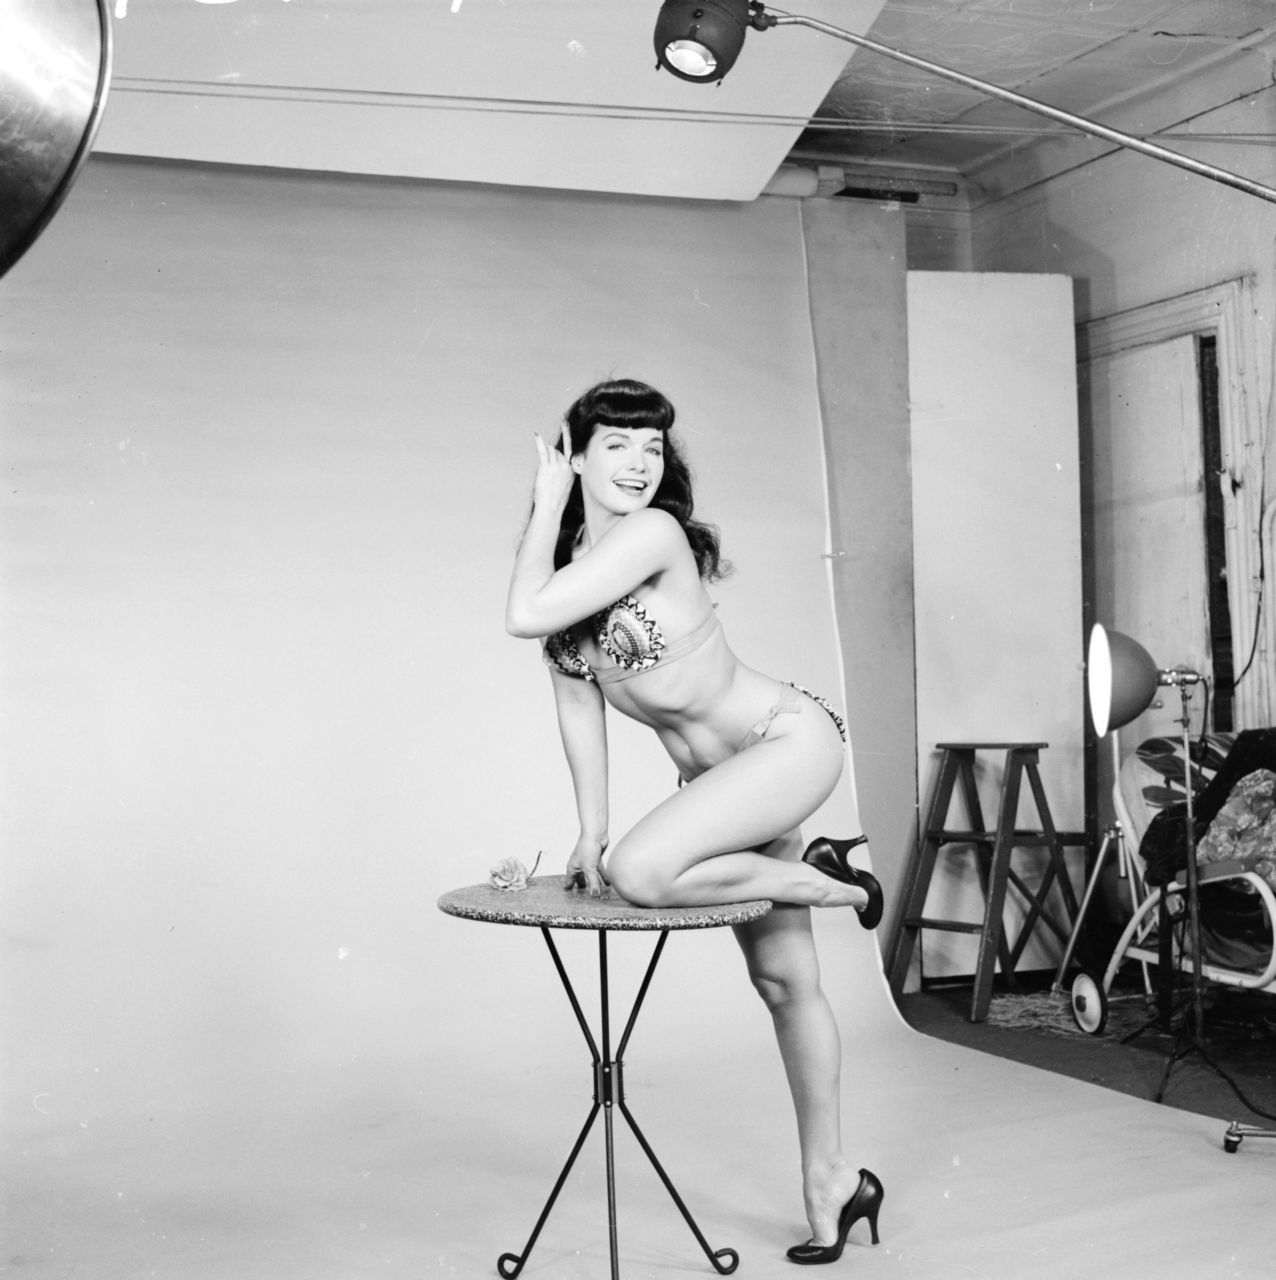 Bettie Page photographed by Weegee